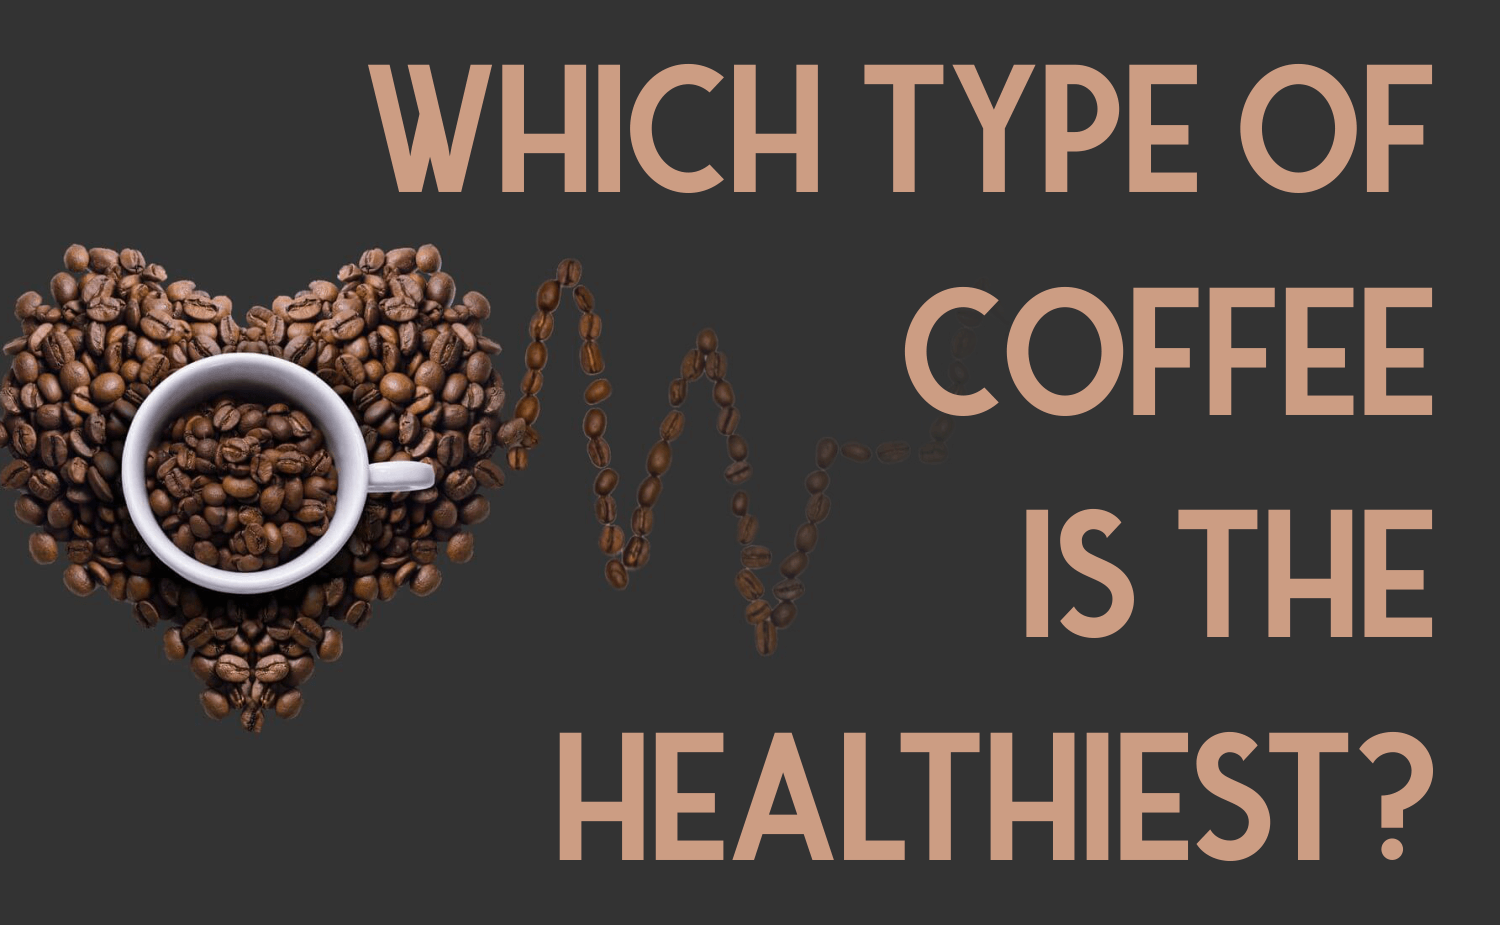 Which Type of Coffee Is the Healthiest?